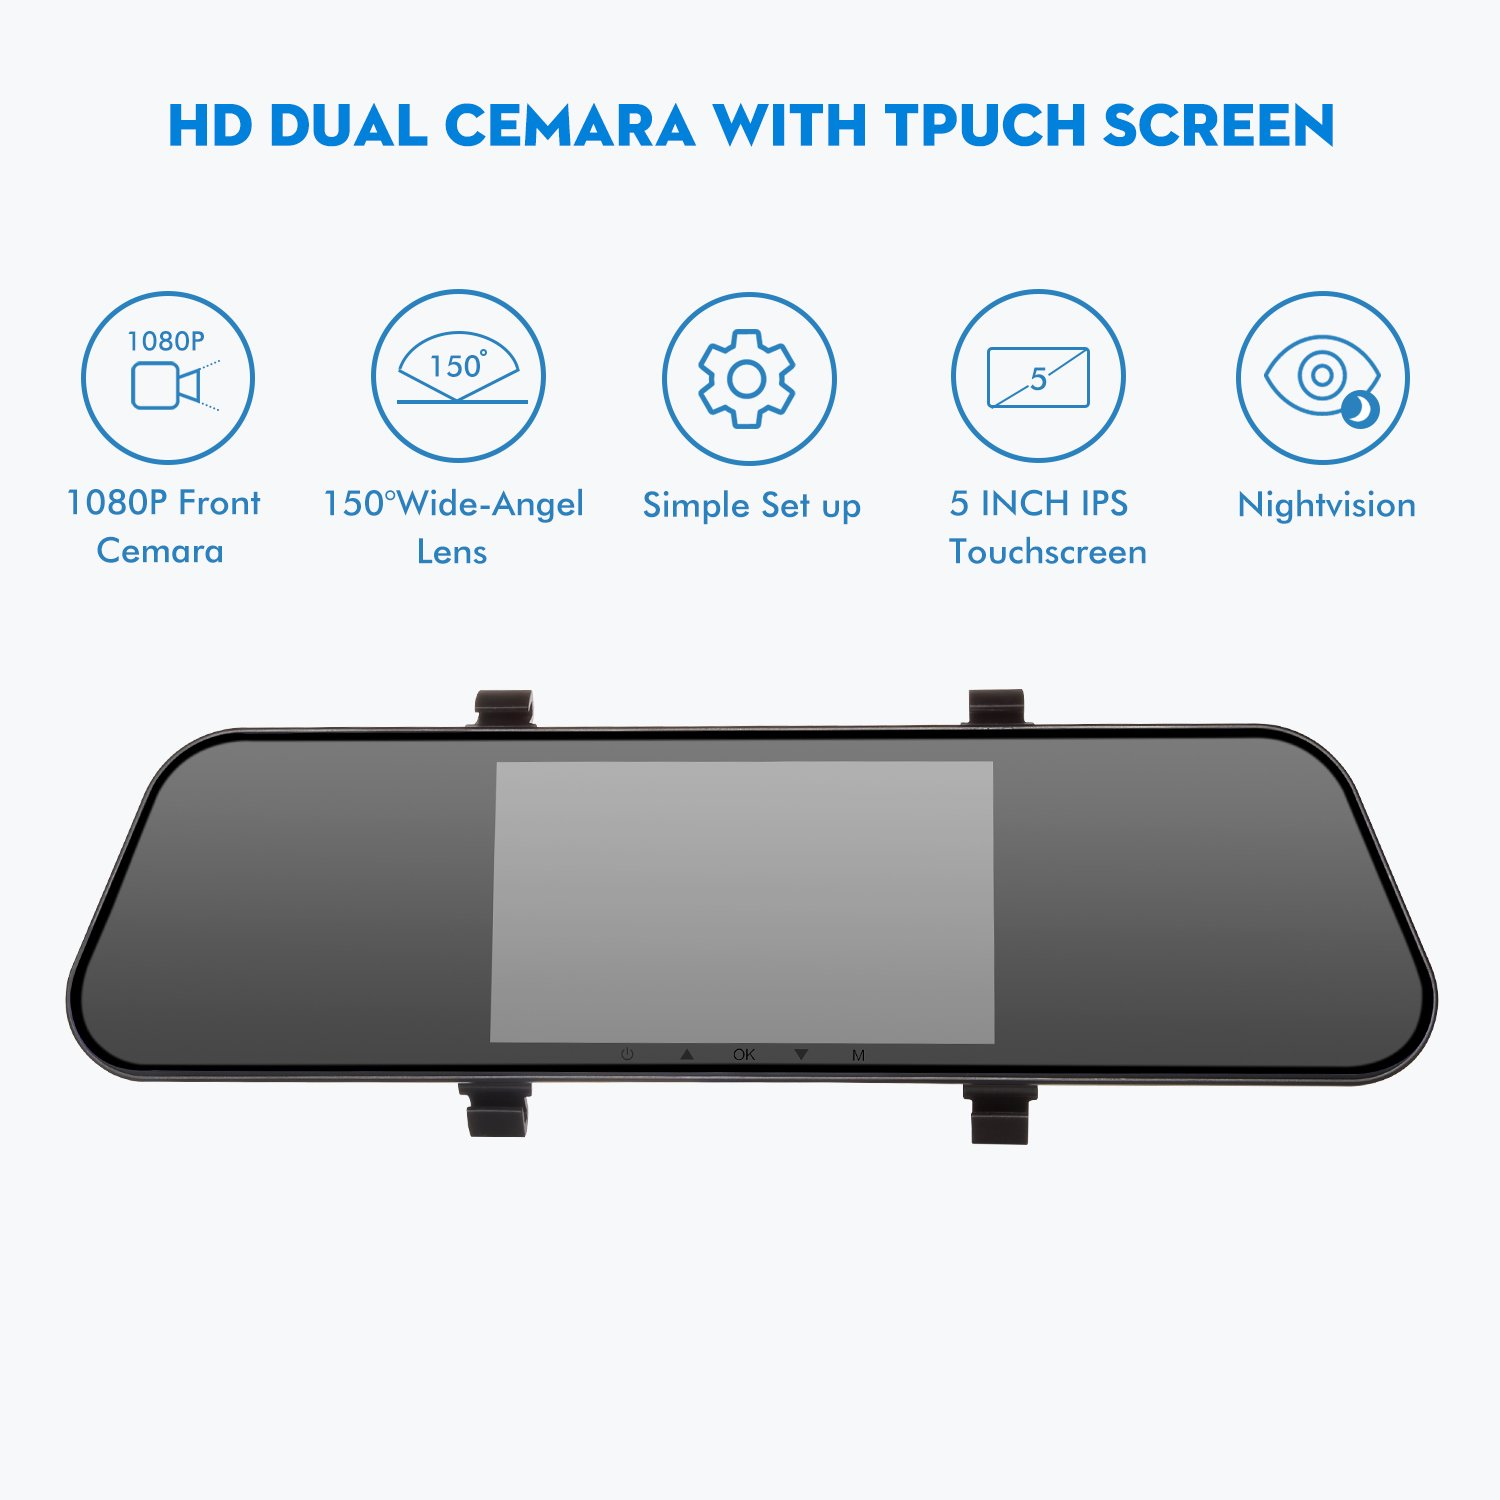 4-way Video Car Switch Parking Camera 4 View Image Split-screen Control Box Kits Elegant In Style Parts & Accessories